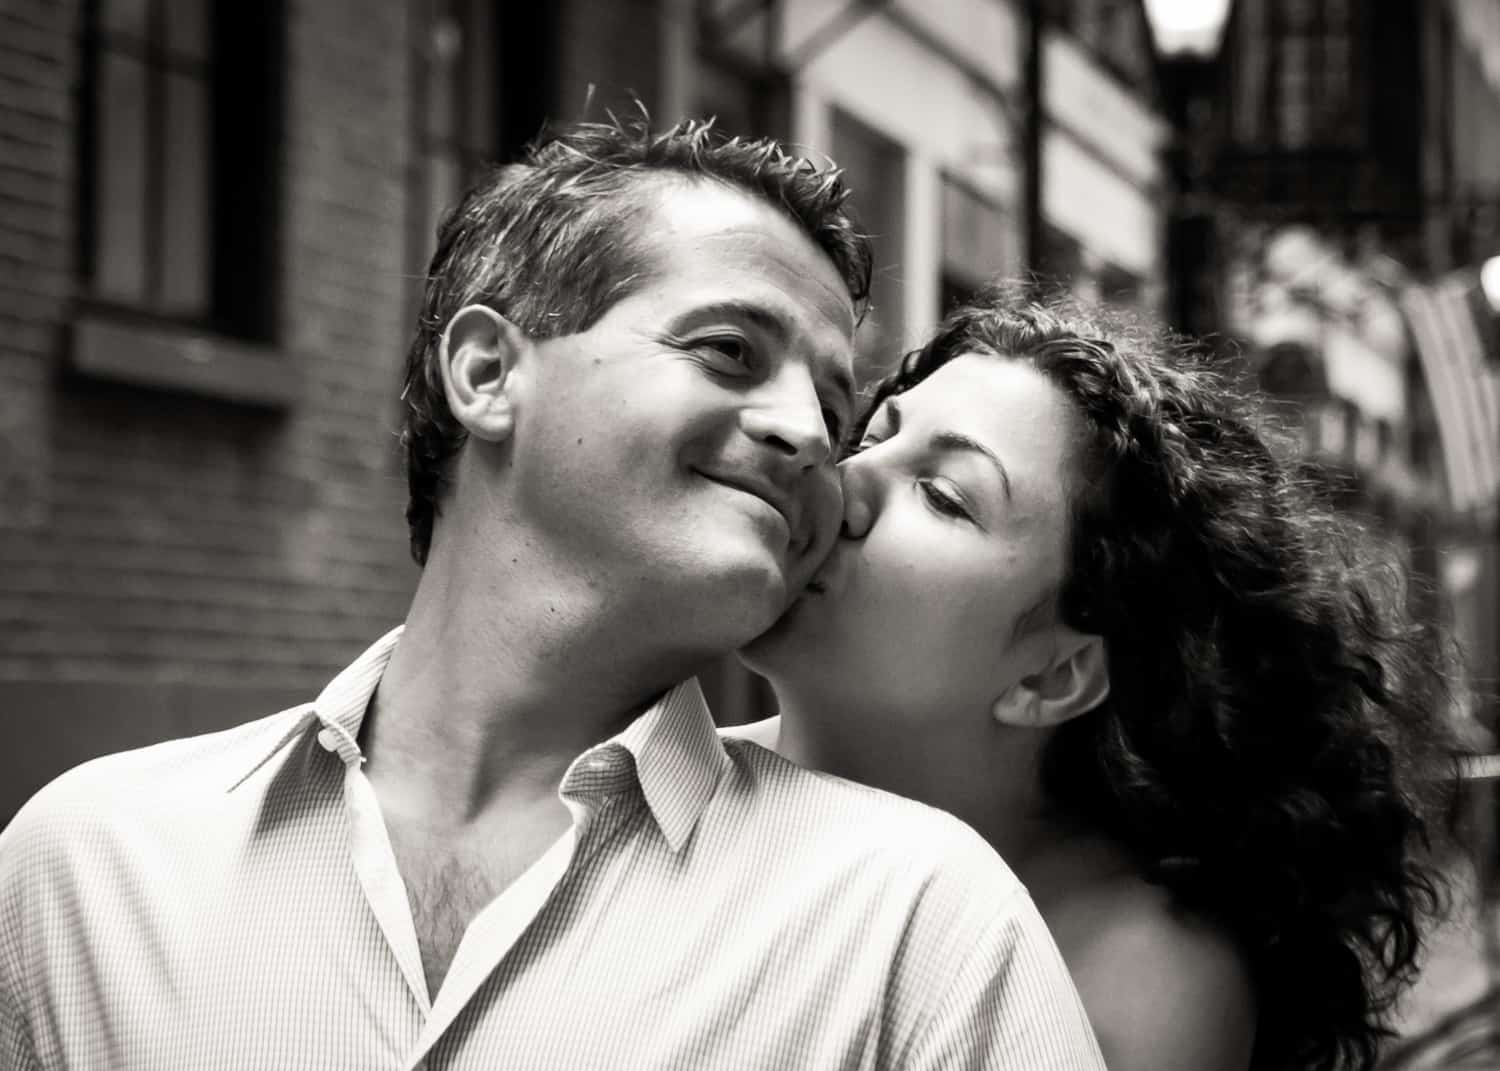 Black and white photo of woman kissing man on the cheek